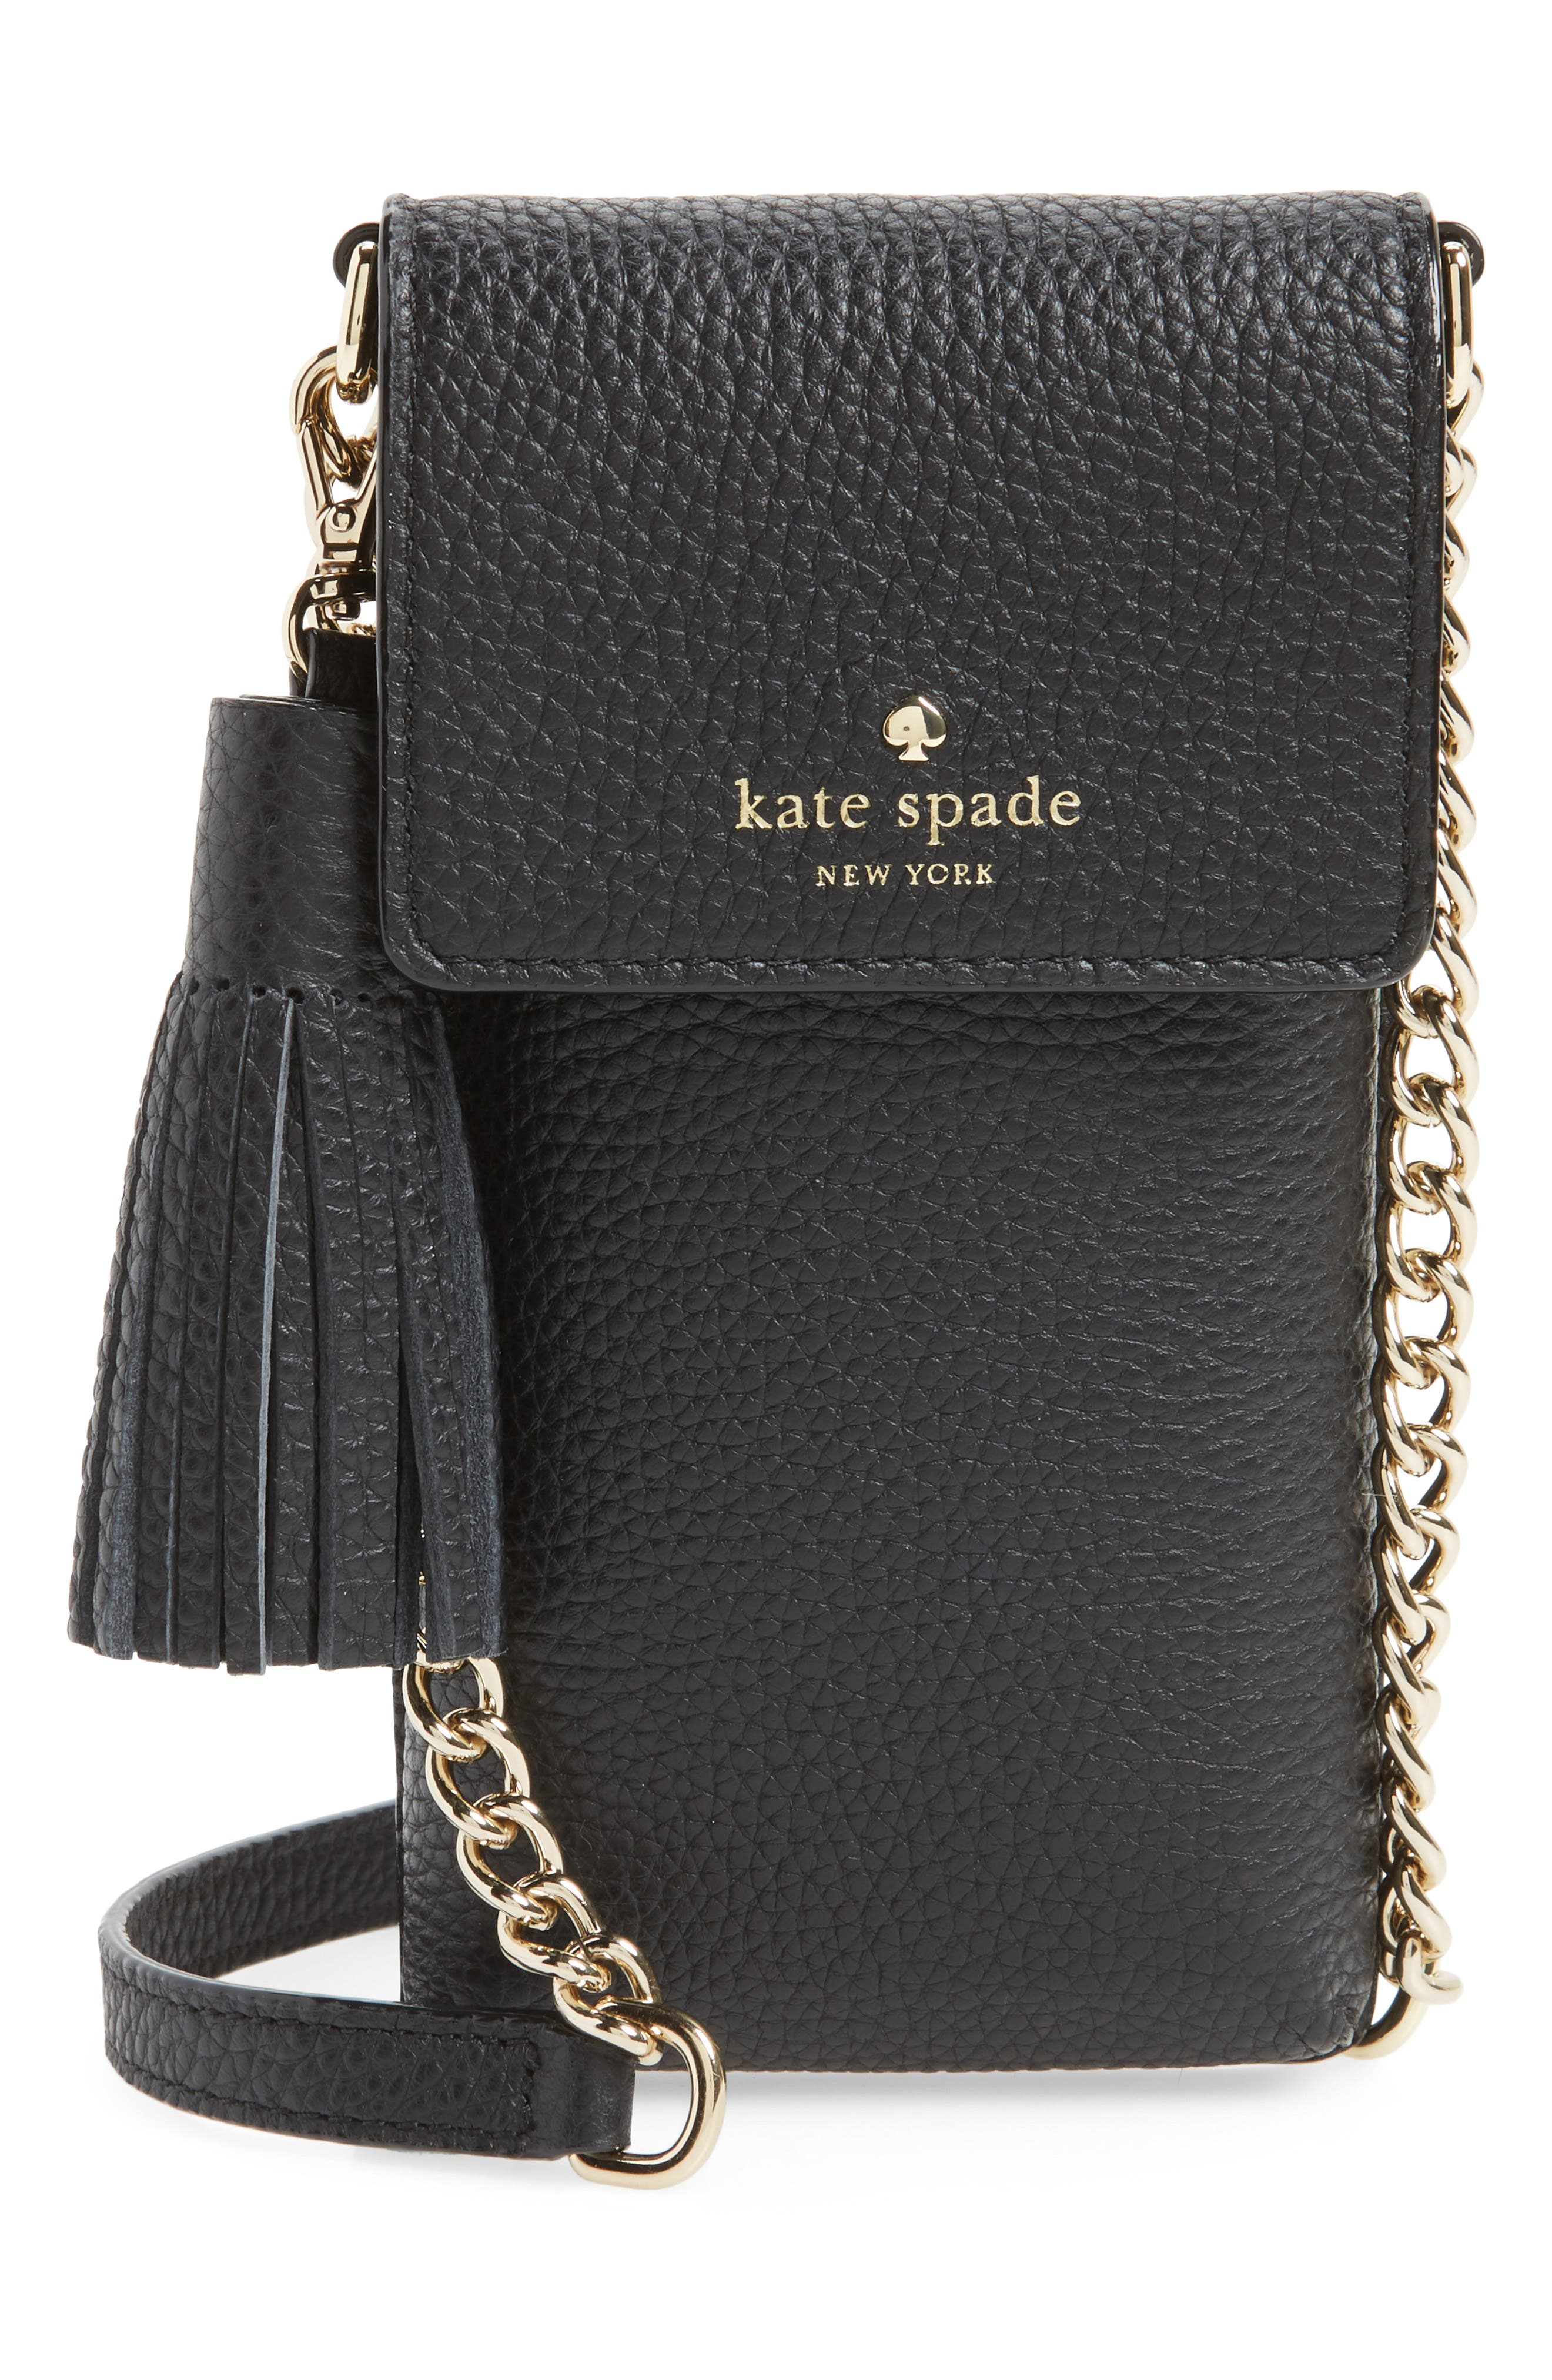 kate spade new york north/south leather smartphone crossbody bag